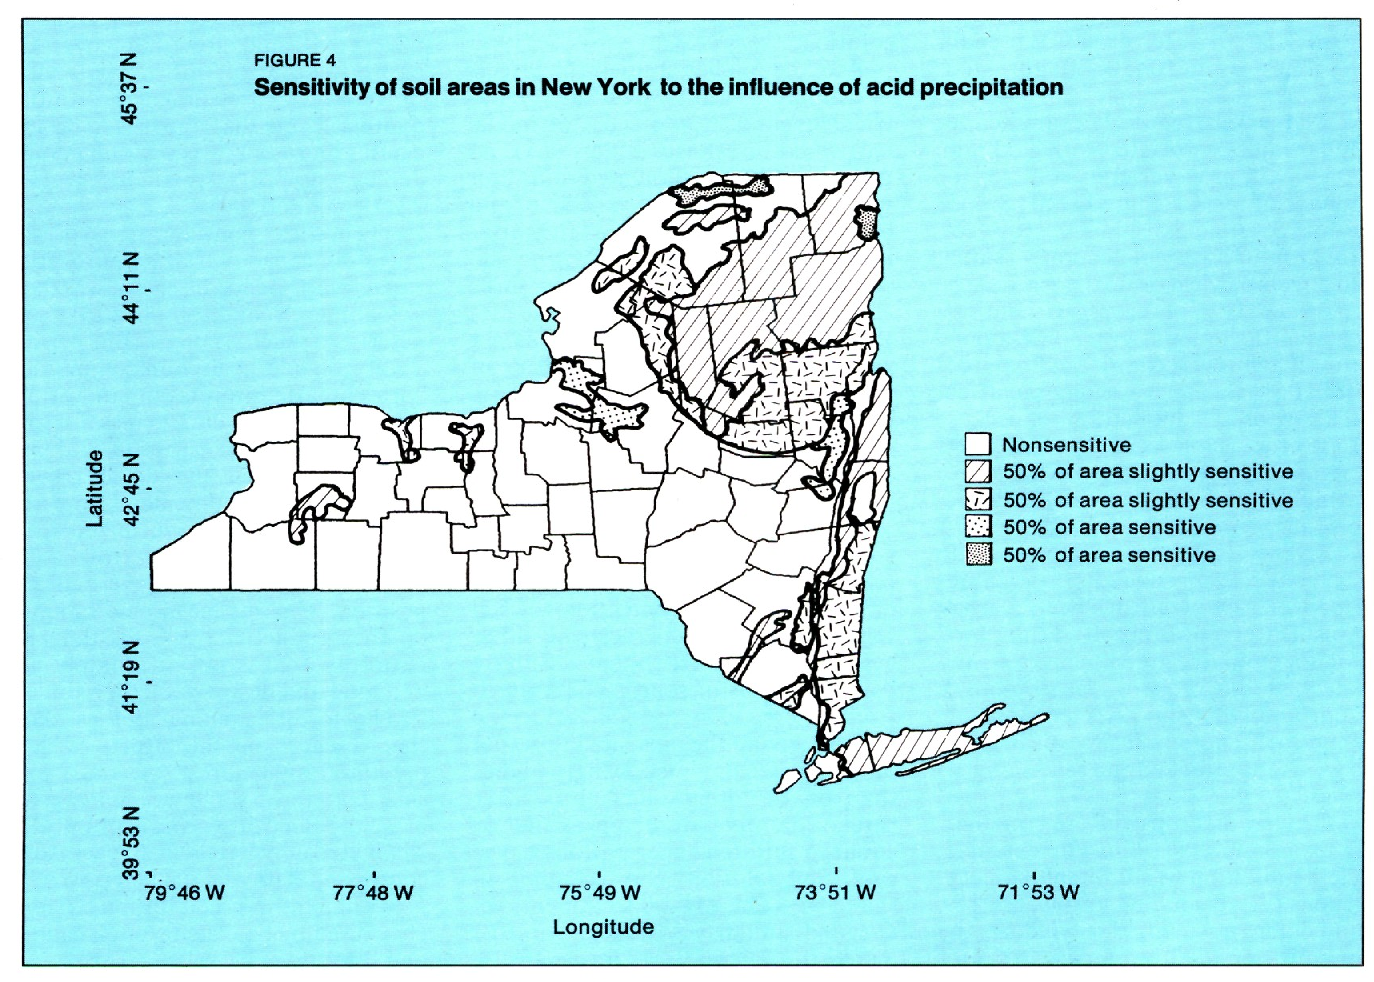 FIGURE 4 Sensitivity of soil areas in New York to the influence of acid precipitation